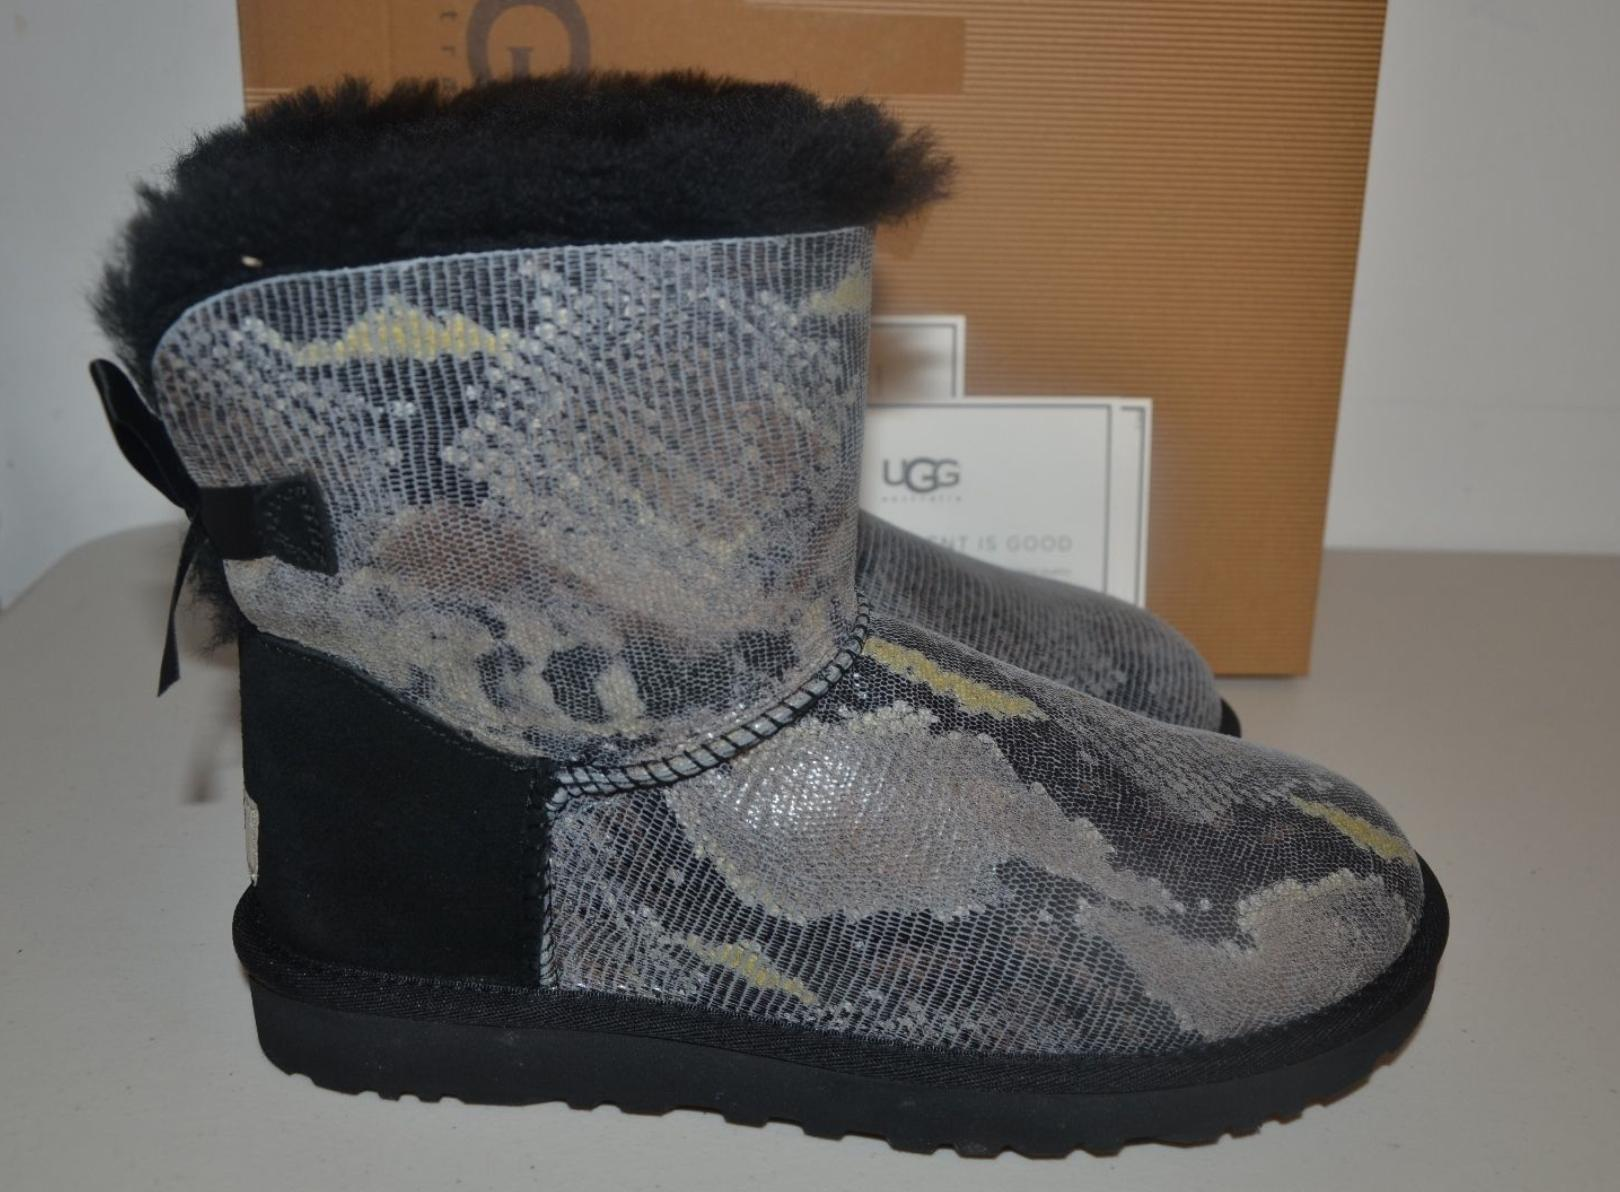 5af6697f6e8 wholesale ugg bailey bow gray size 8 545c7 8dee0